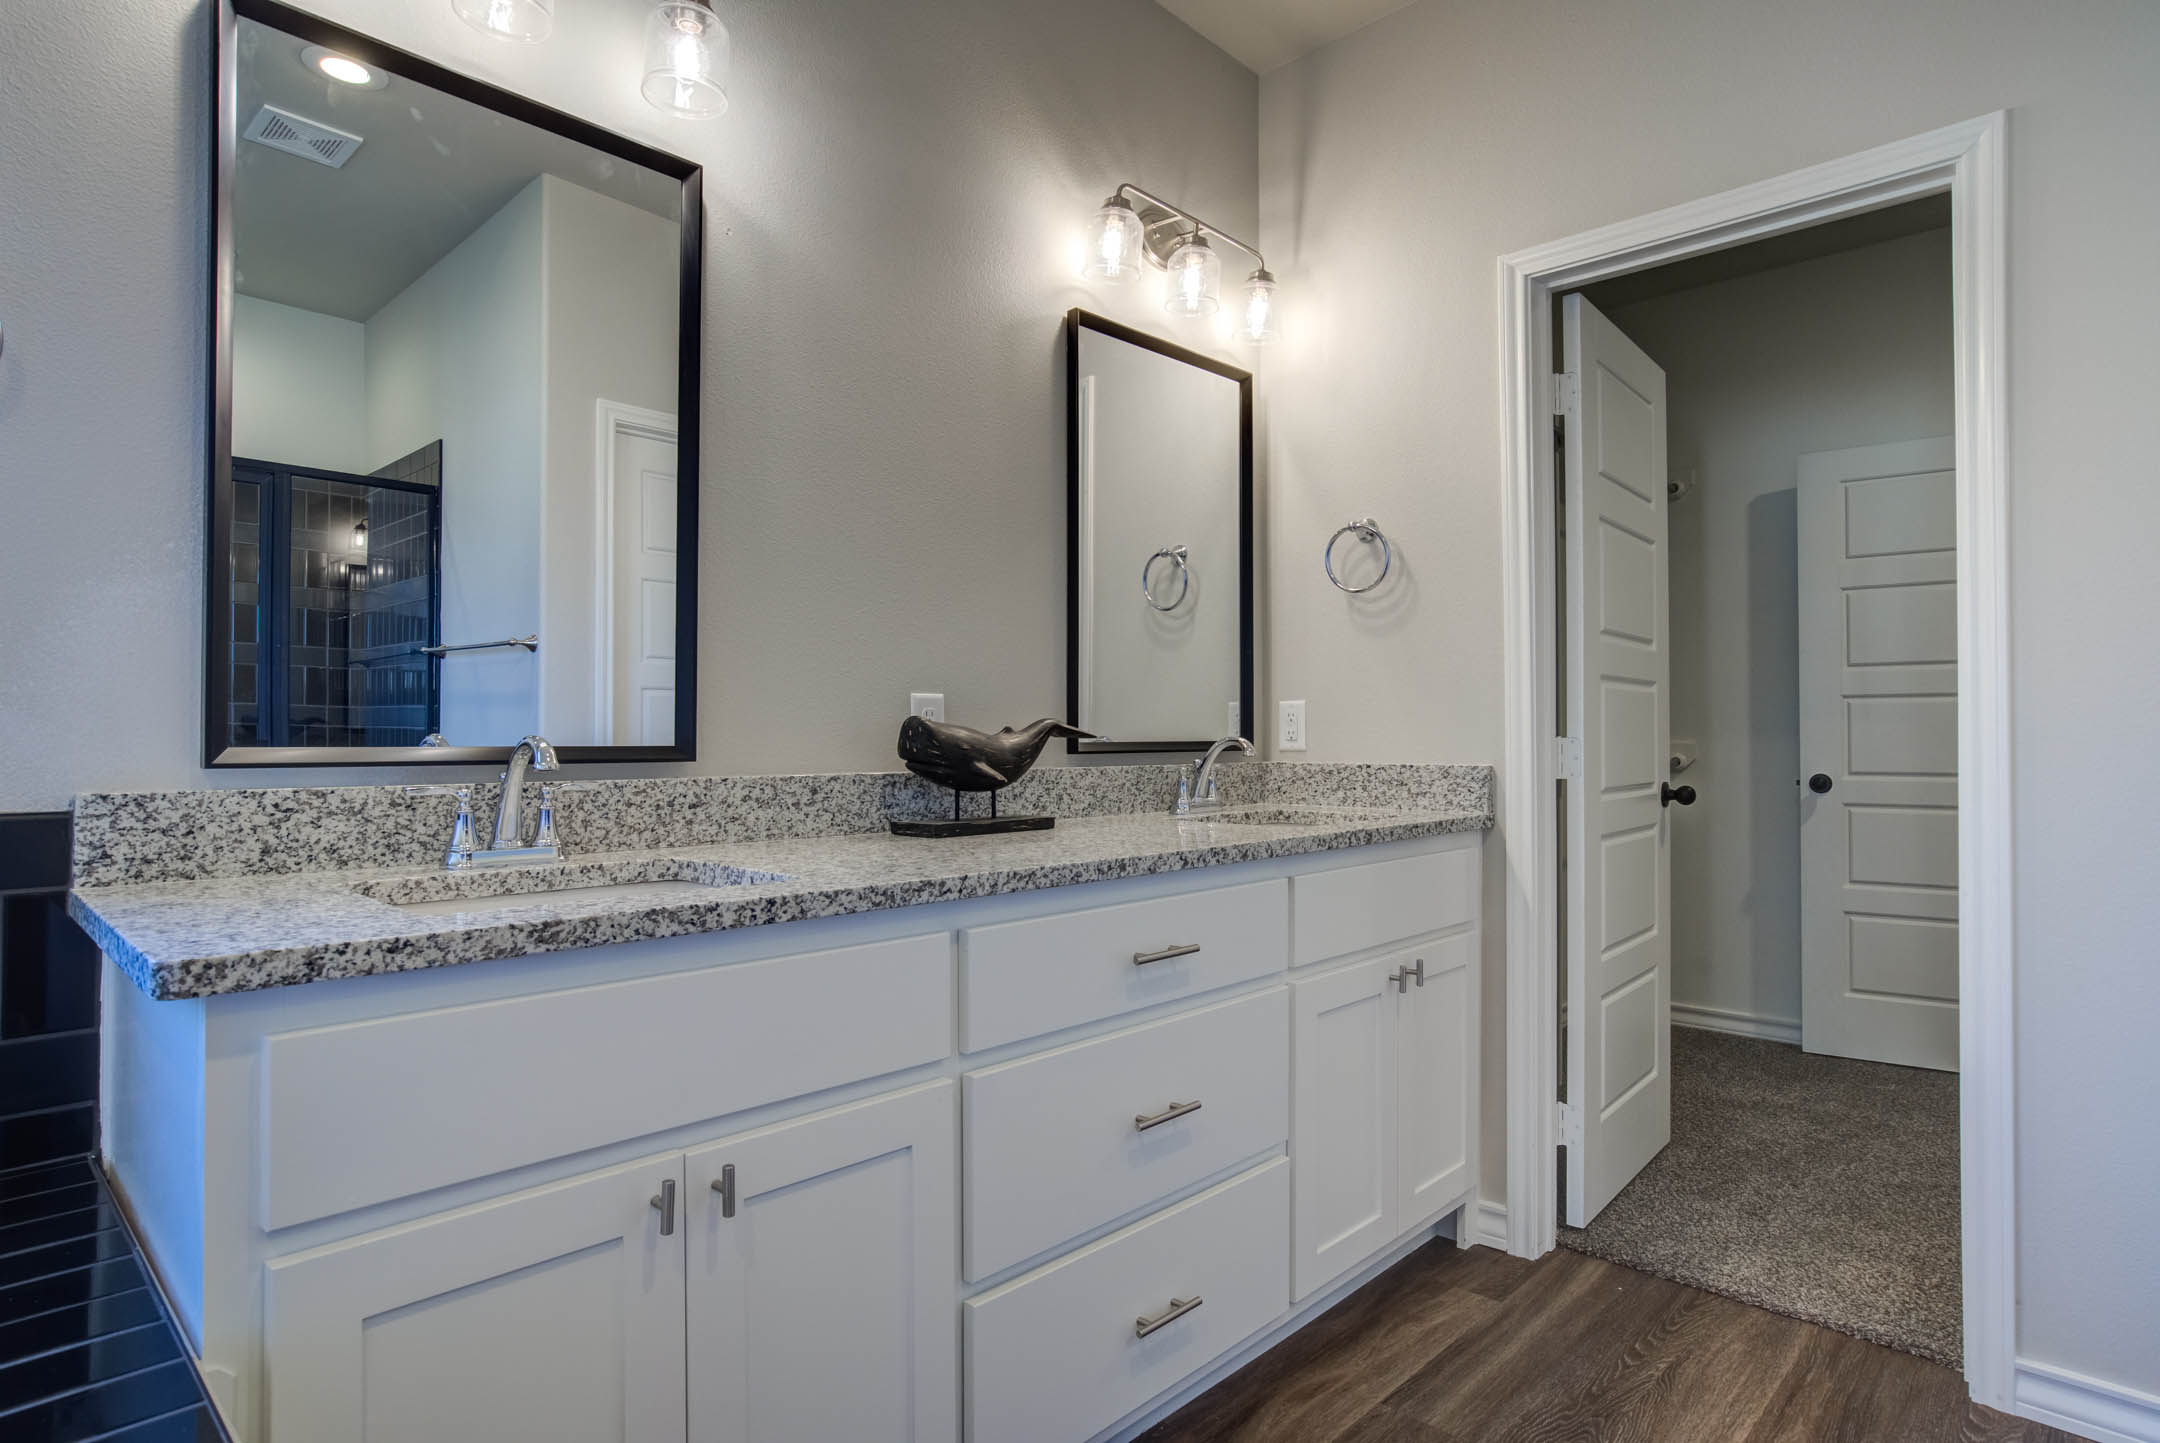 Vanity in master bath of new home for sale in Lubbock.